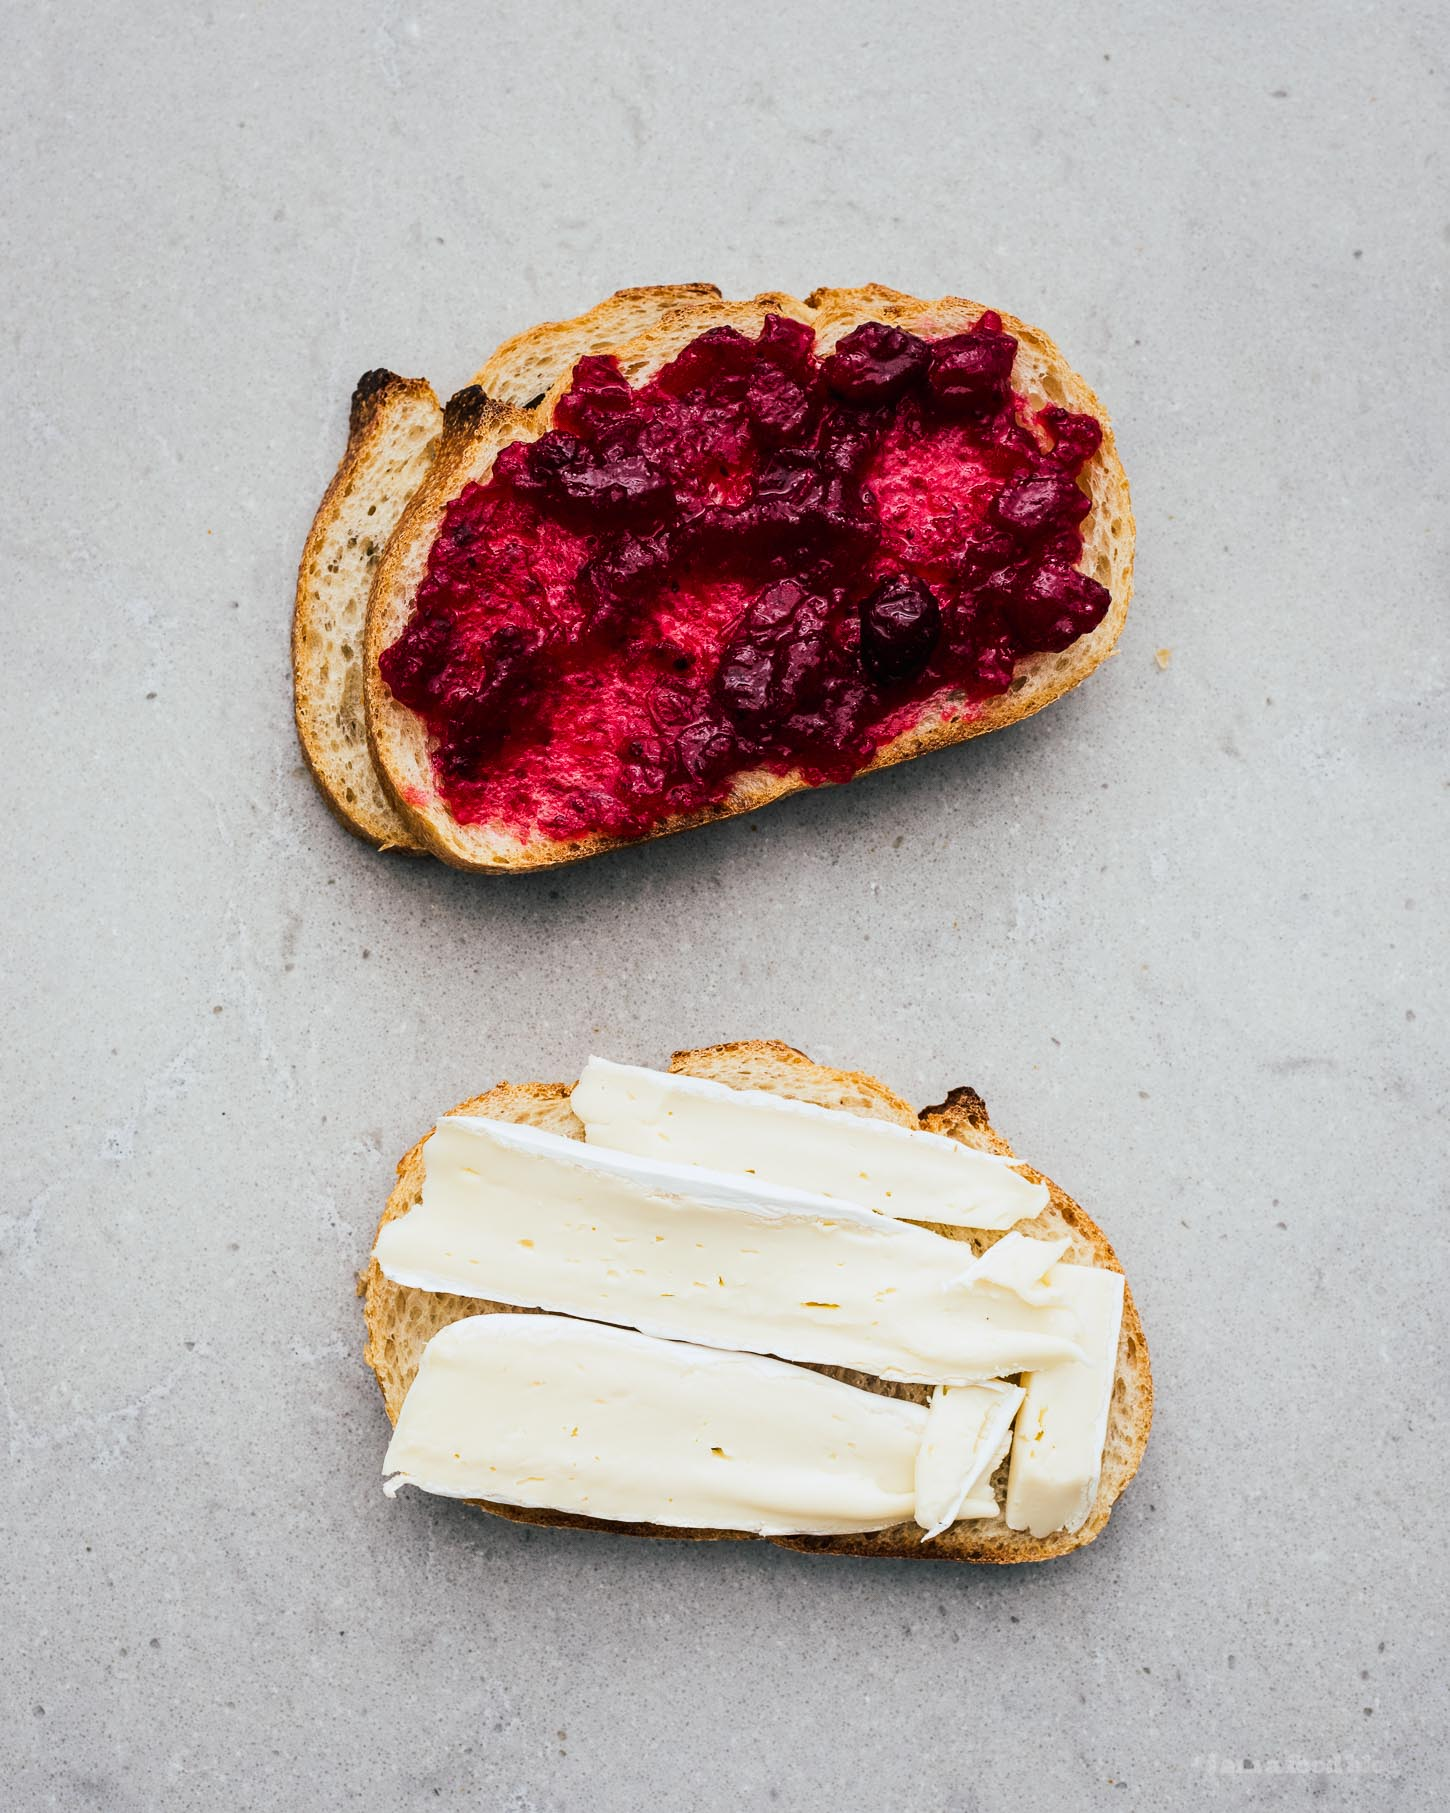 Cranberry and Brie Grilled Cheese | www.iamafoodblog.com